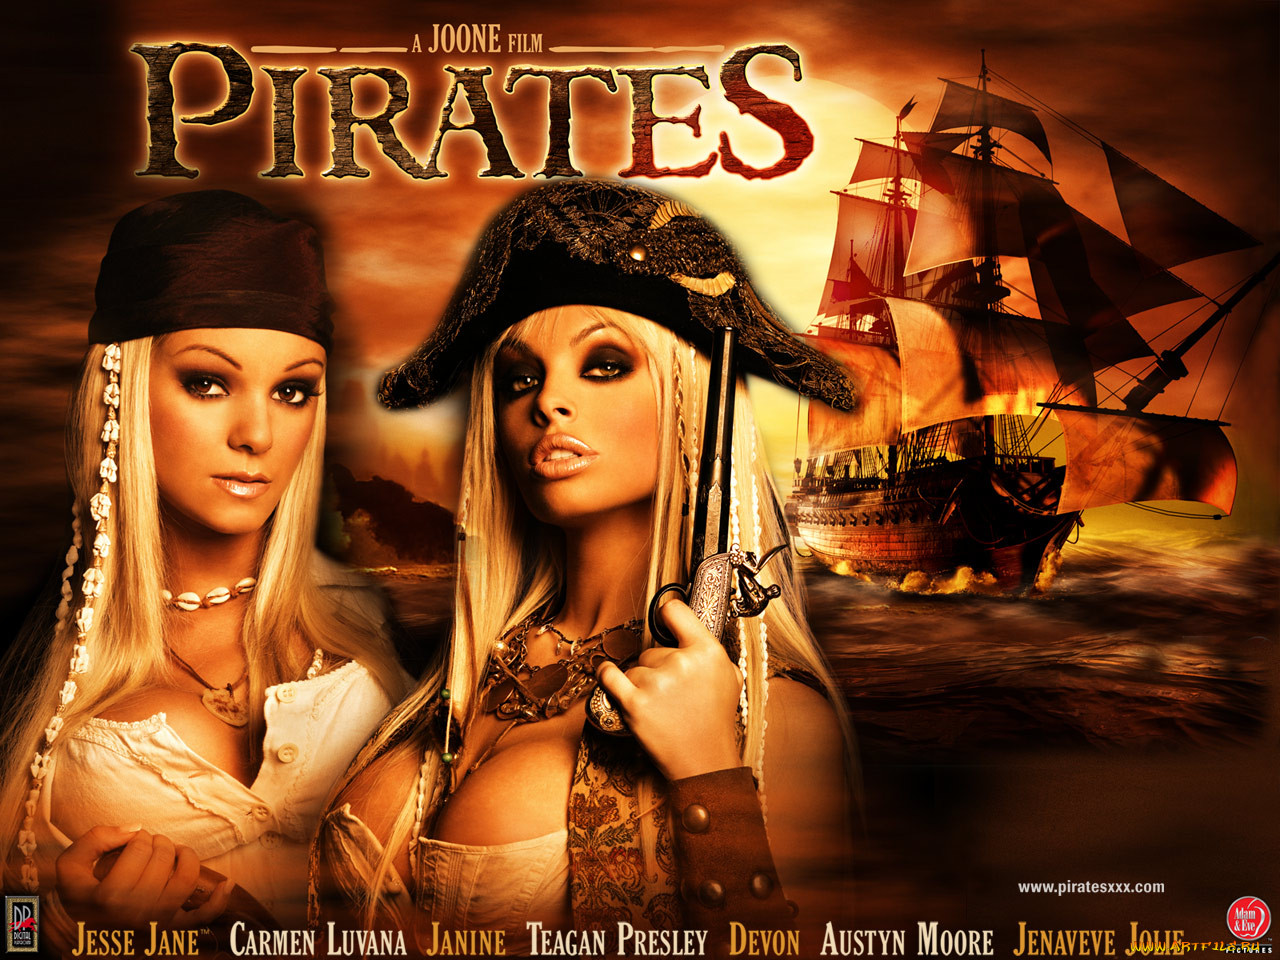 Pirate sex movies download hentai image